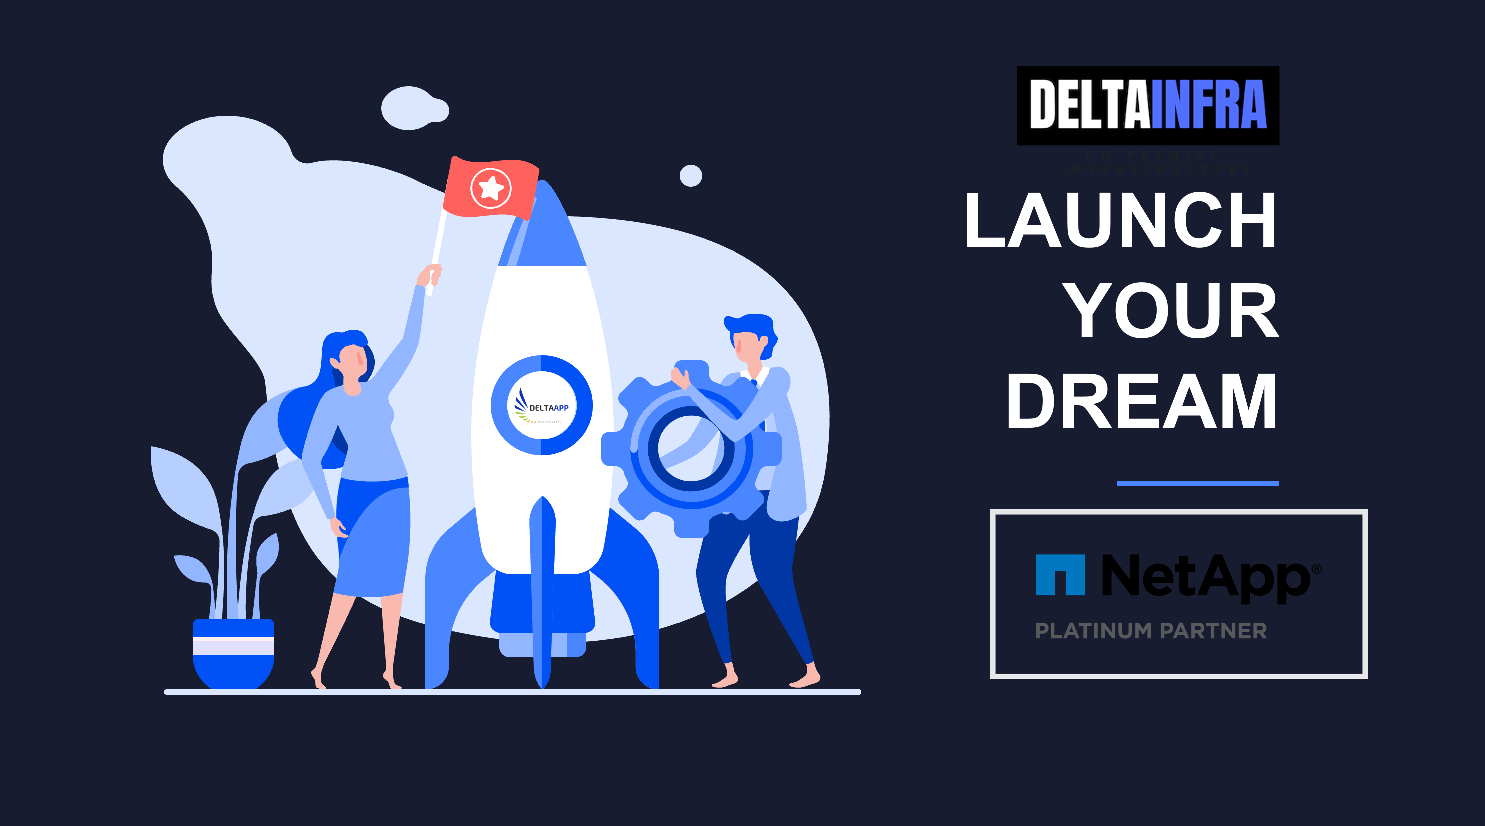 deltainfra launch your dream